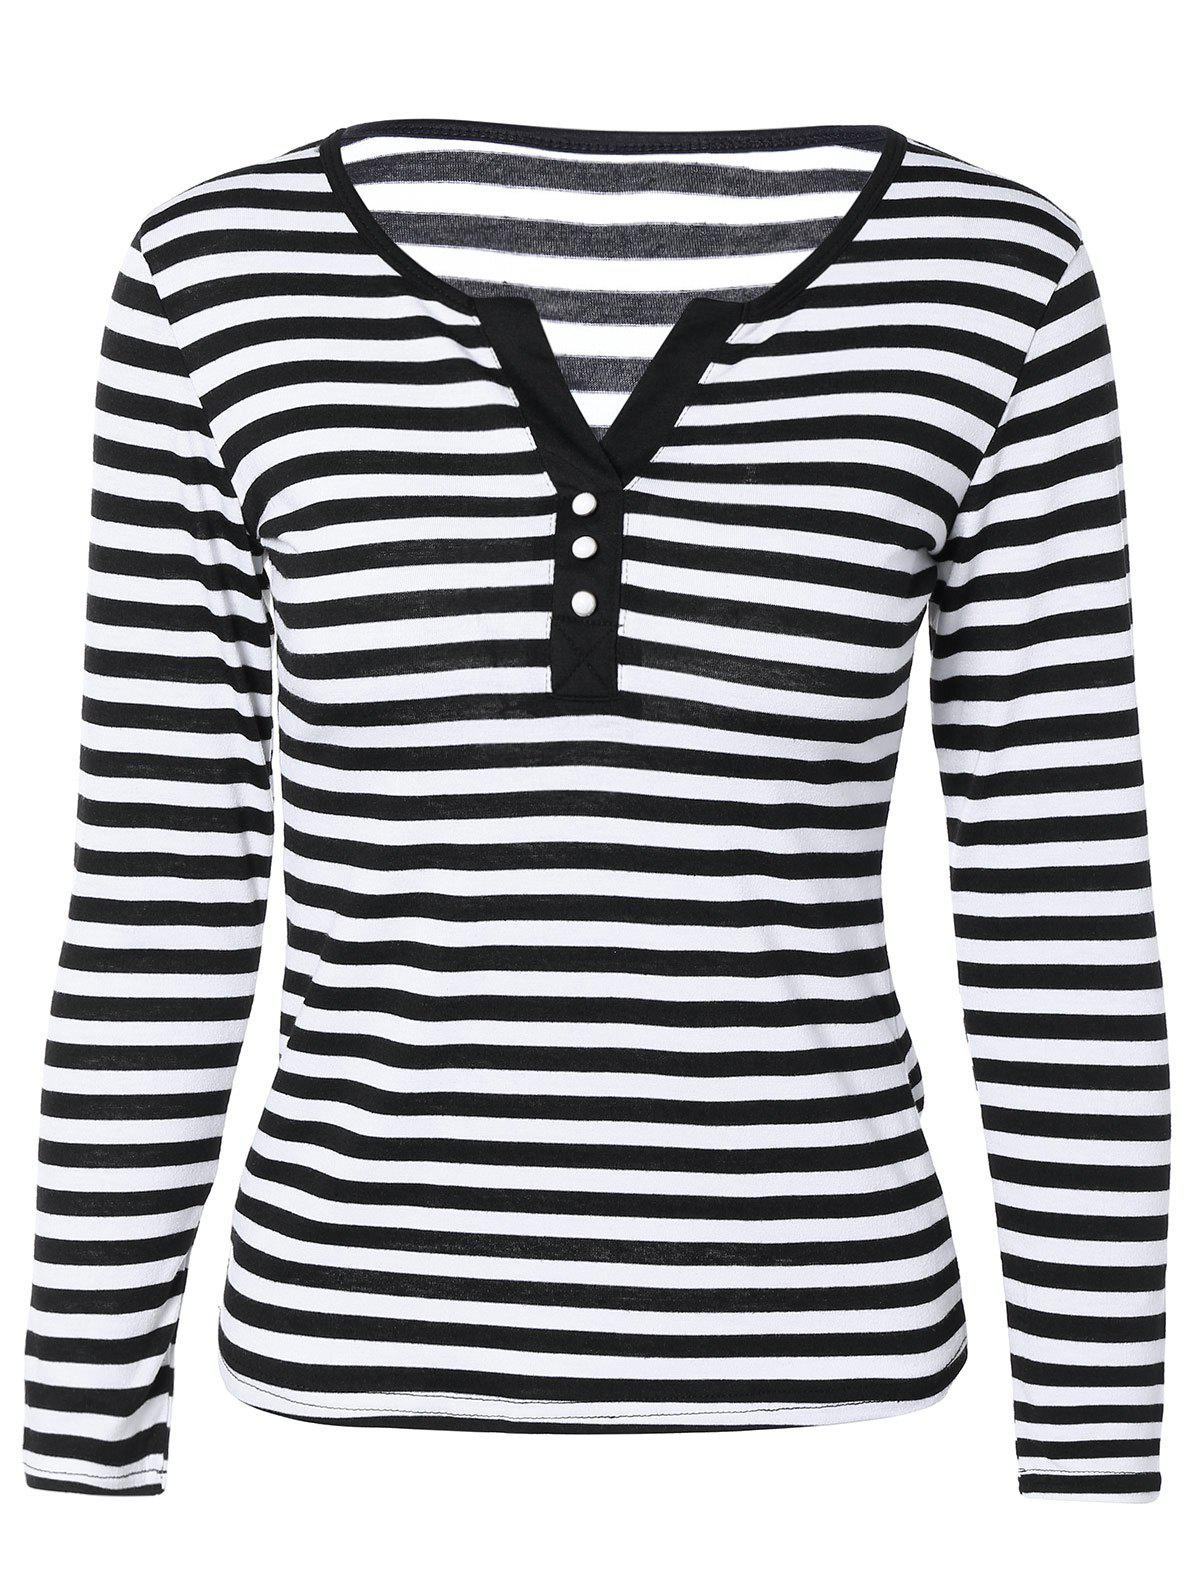 Casual Buttoned Striped Top For Women